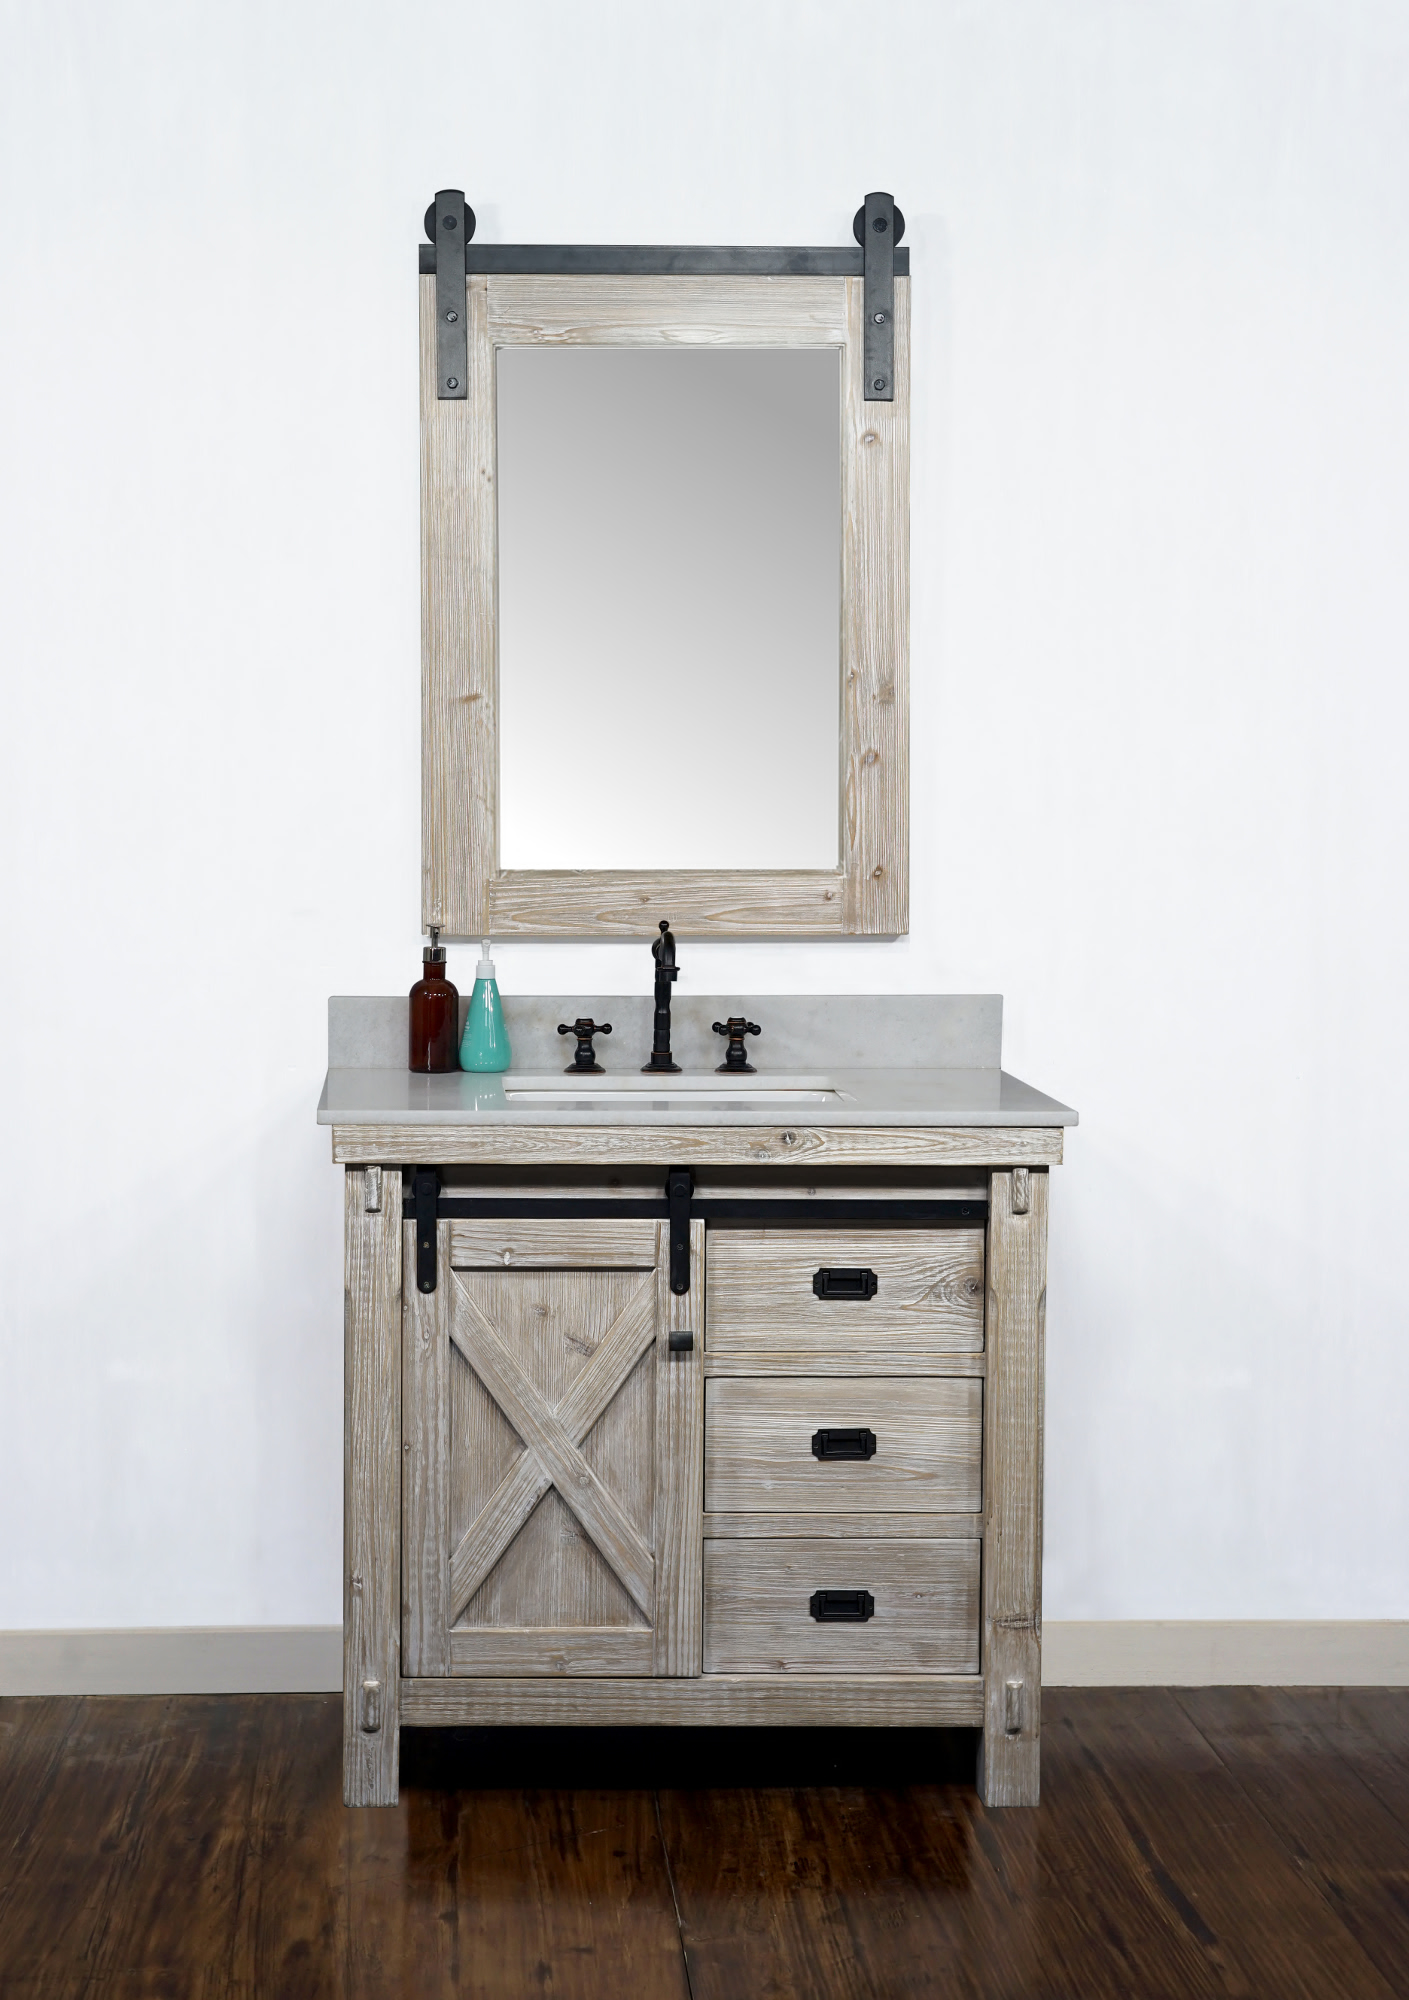 "36"" Rustic Solid Fir Barn Door Style Single Sink Vanity - No Faucet with Countertop Options"